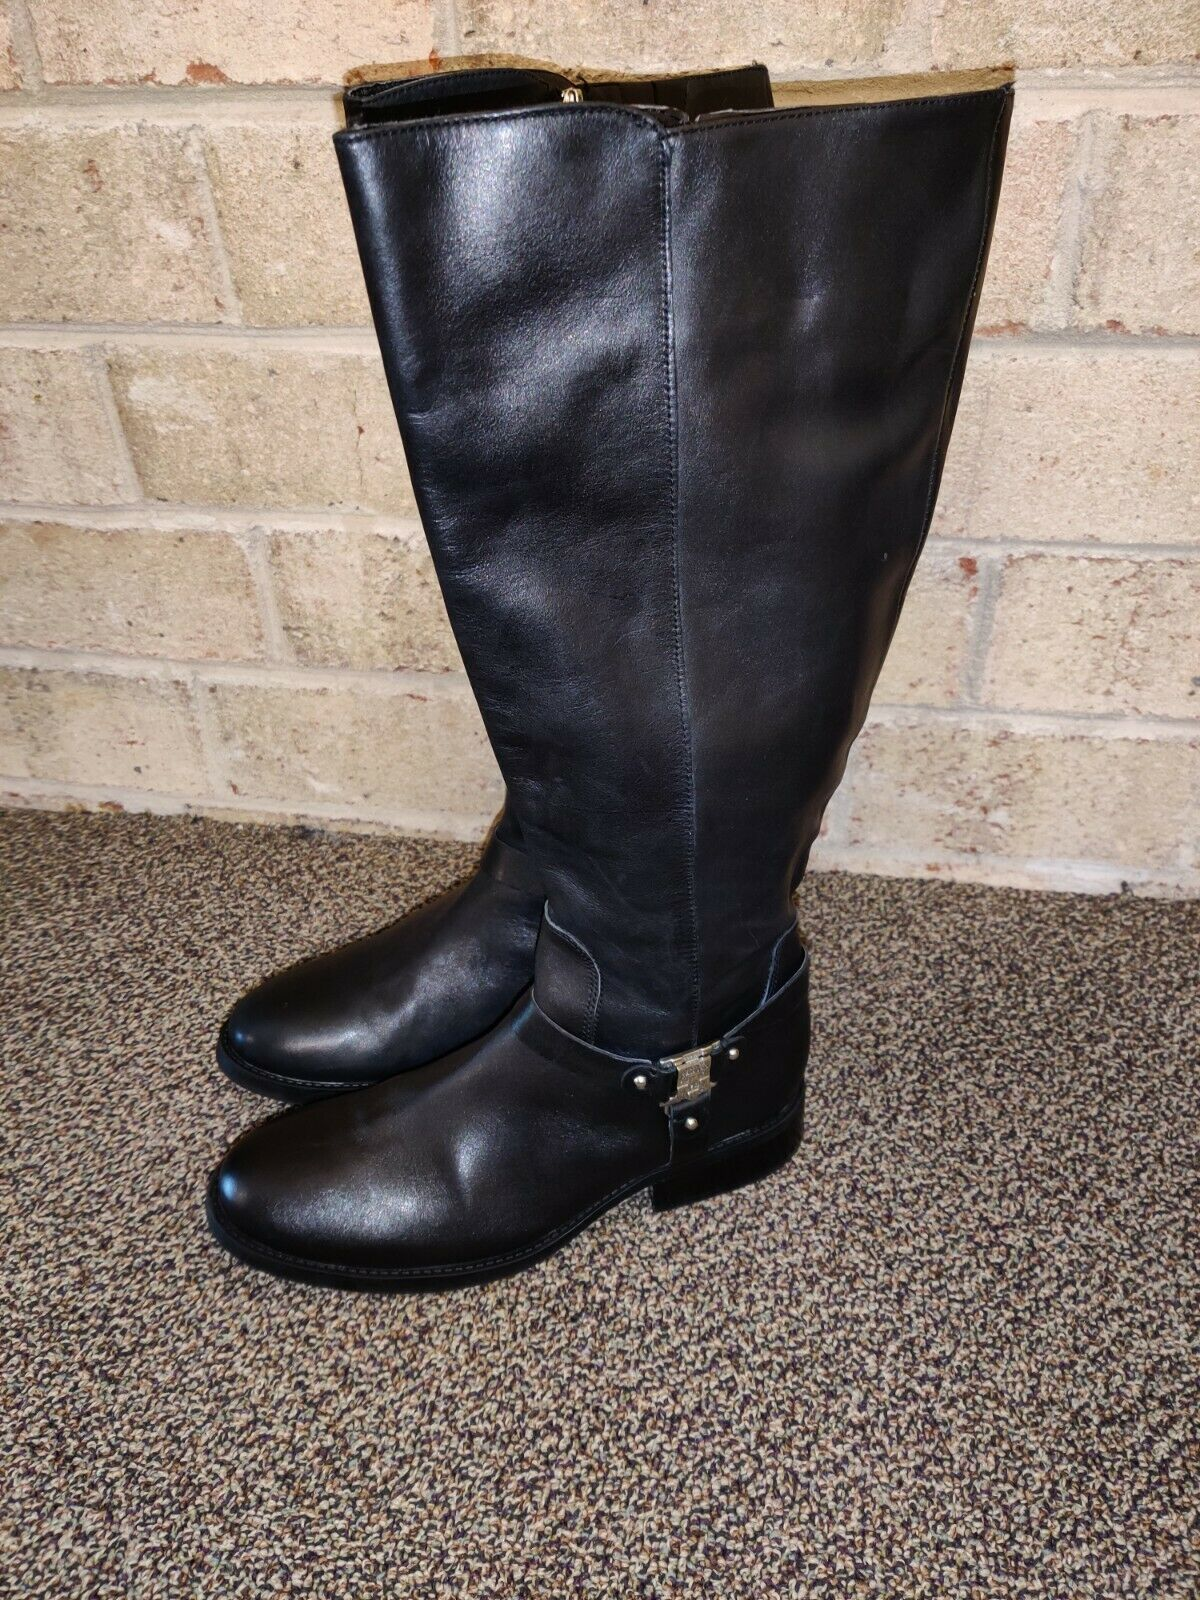 Vince Camuto Farren Black Leather Knee Riding Boots Women's Size 10